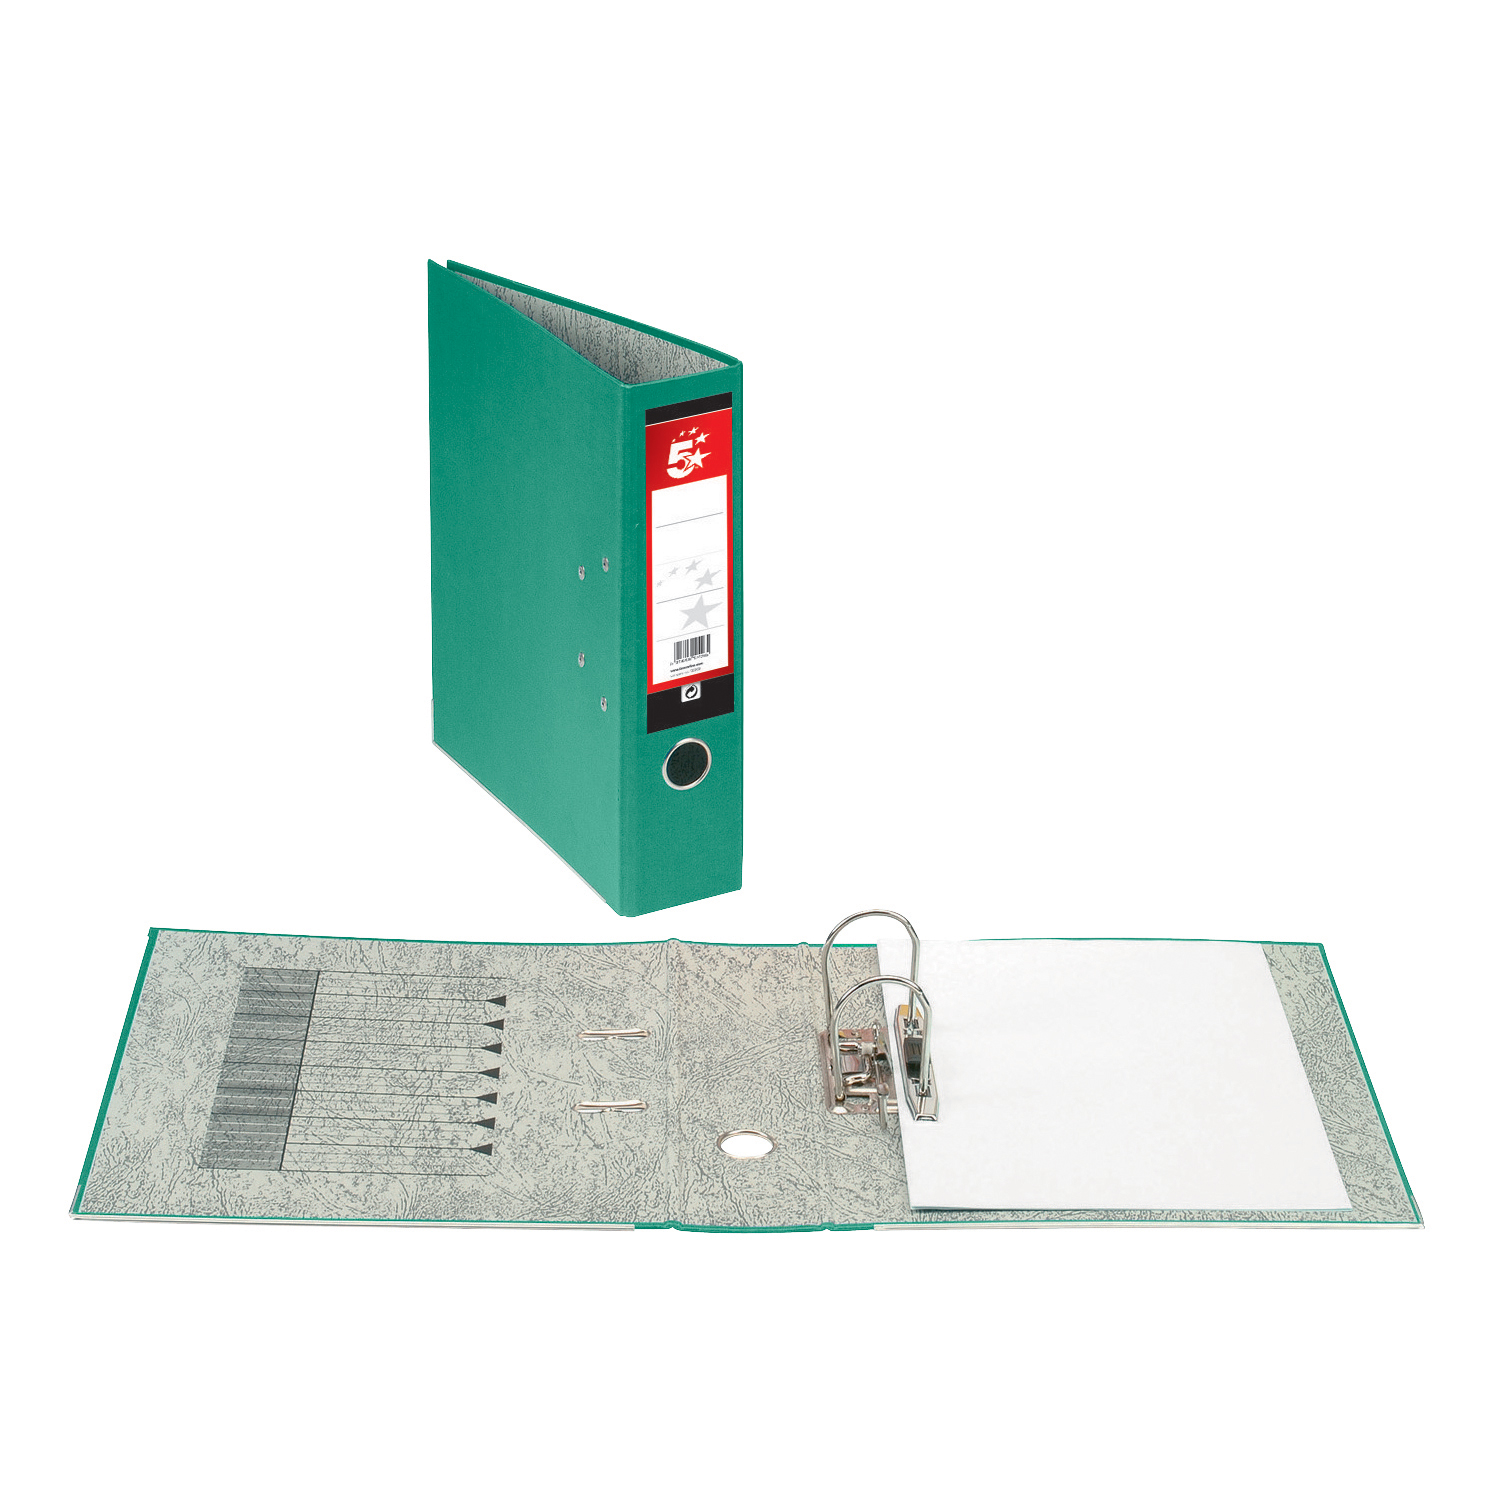 Image for 5 Star Office Lever Arch File 70mm Foolscap Green [Pack 10]